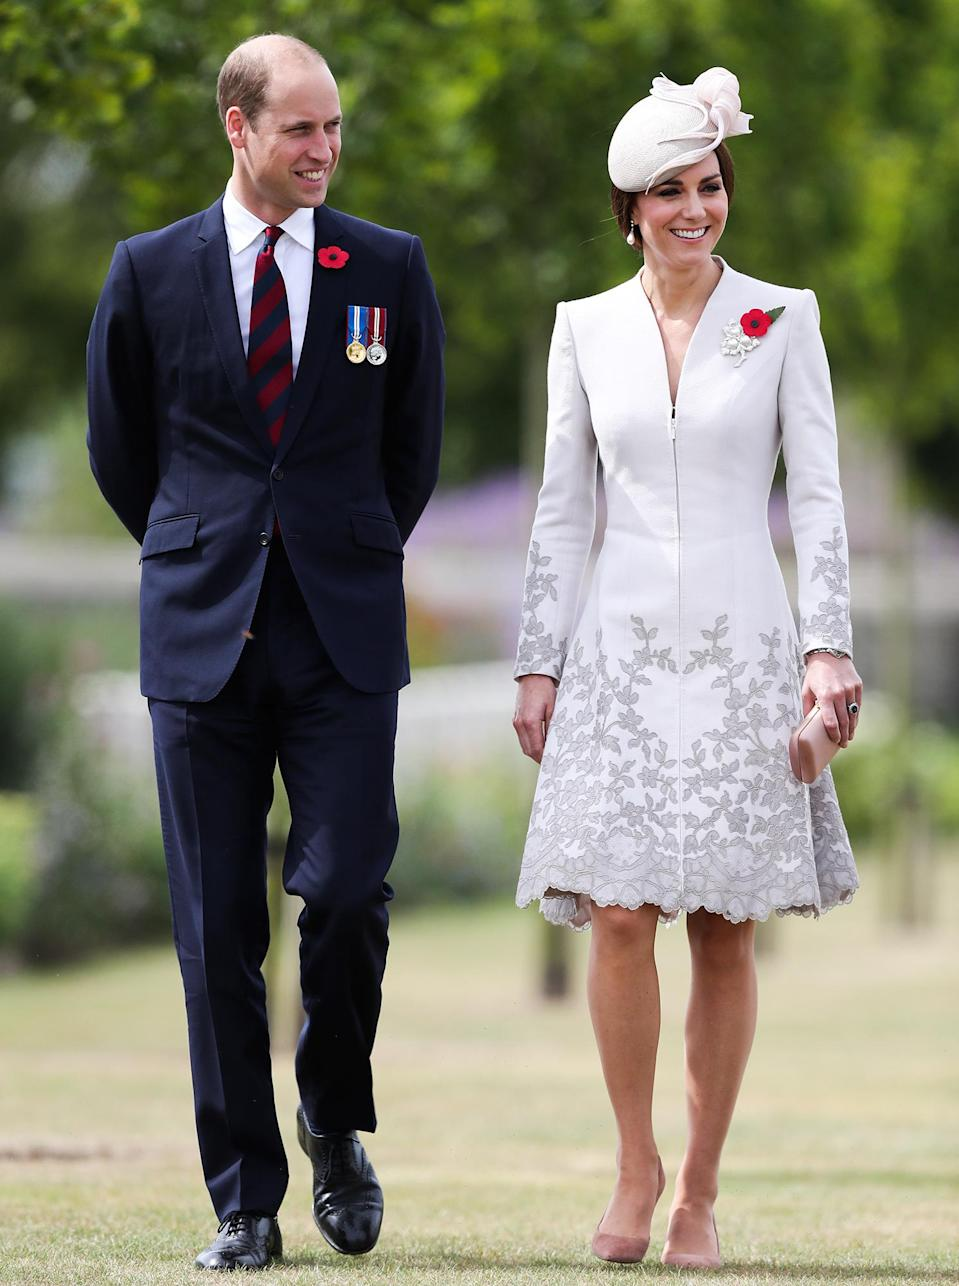 <p><strong>When:</strong> July 31, 2017 <strong>Where:</strong> Attending a ceremony at the Tyne Cot cemetery near Ypres in Belgium <strong>Wearing:</strong> Catherine Walker white Melrose coat <strong>Get the Look:</strong> Express Floral Lace Trench Coat, $178; <span>express.com</span> NIC and ZOE Lush Lace Trench, $111.37; <span>bloomingdales.com</span> Maggy London Fit & Flare Dress, $100.80; <span>nordstrom.com</span> Chico's Collectibles Lace Limited Trench Jacket, $69.99; <span>chicos.com</span></p>